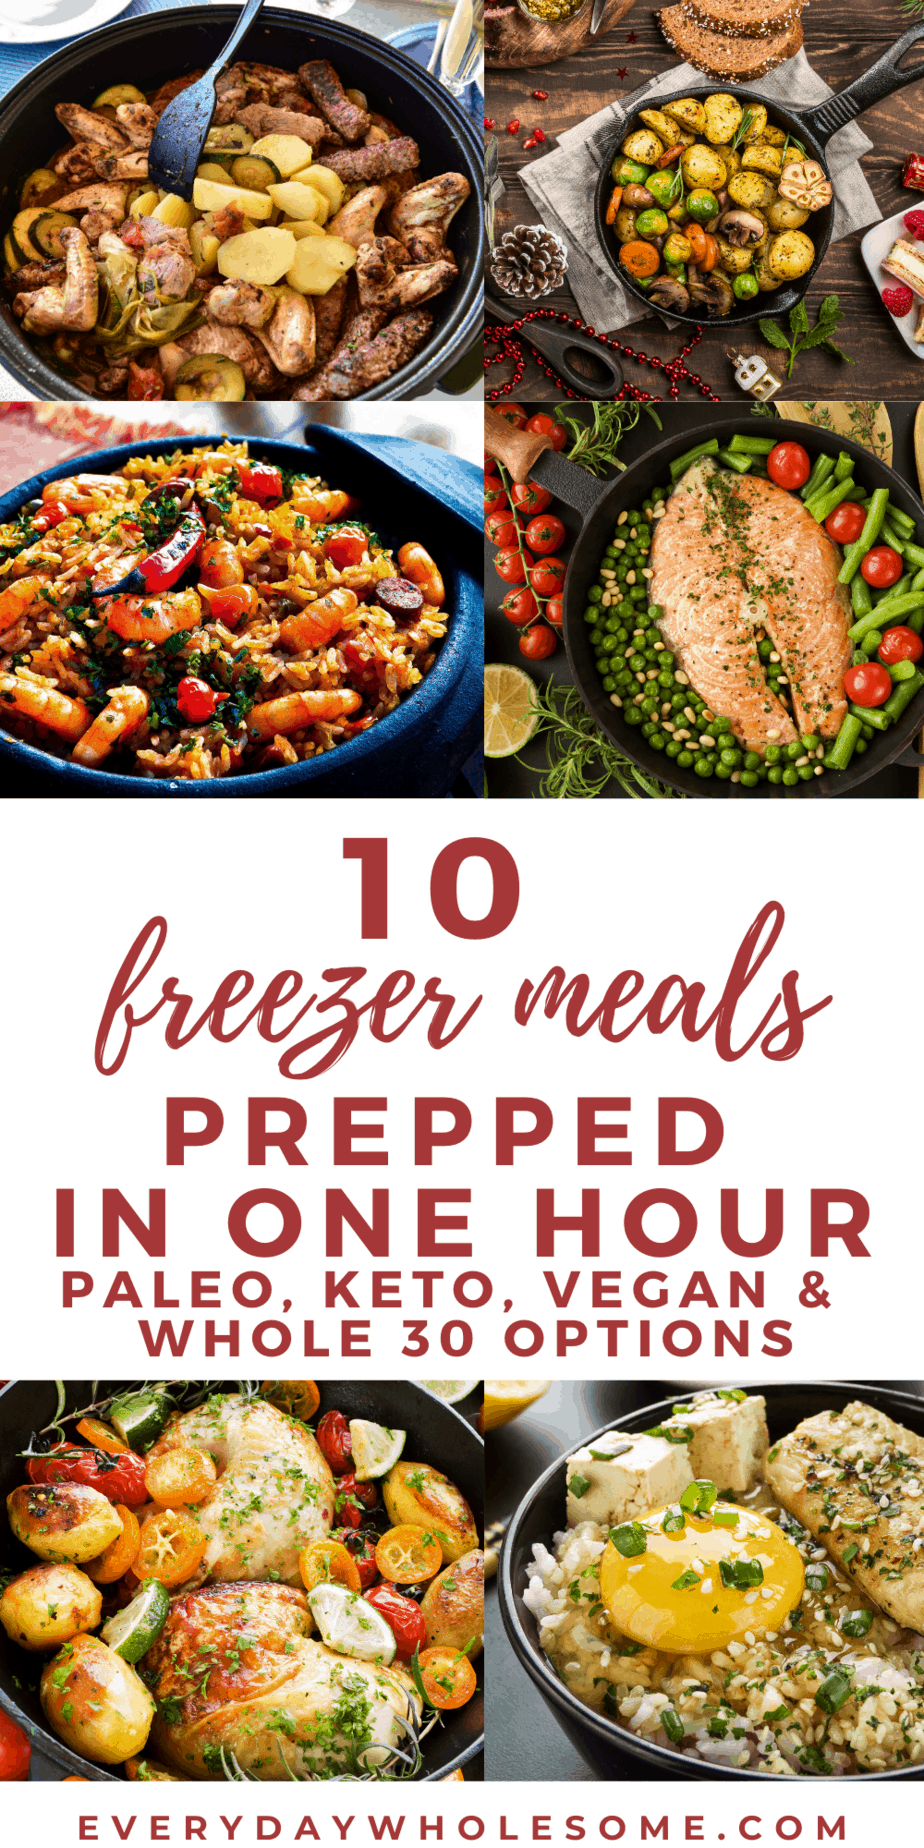 10 FREEZER MEALS PREPPED IN ONE HOUR VEGAN PALOE KETO WHOLE 30